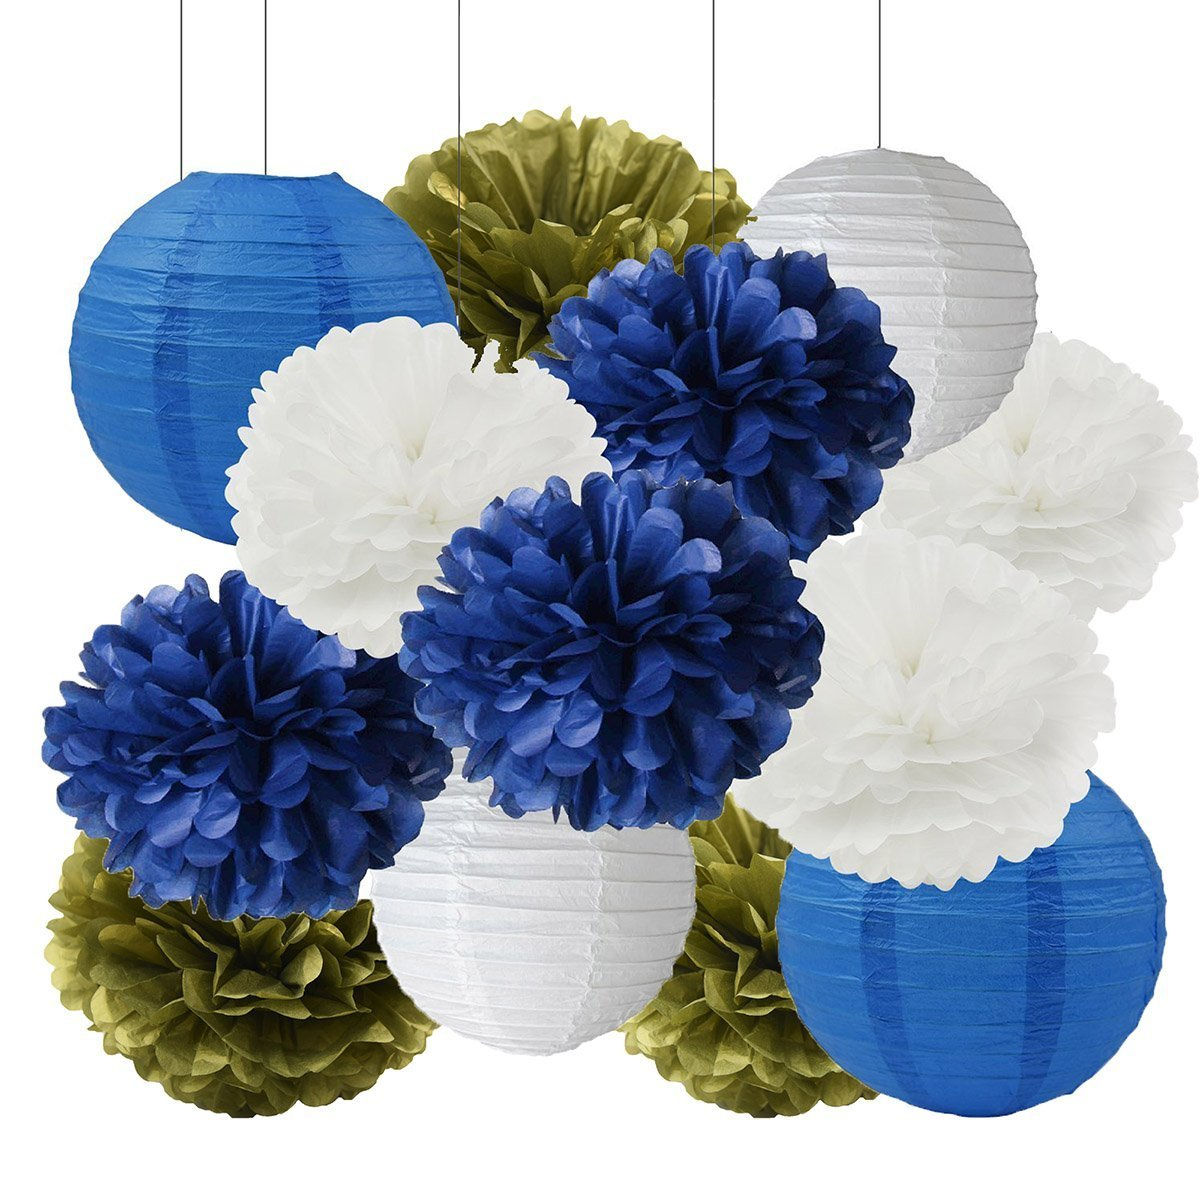 Furuix Big Size White Navy Blue Gold 12inch Tissue Paper Pom Pom Paper Lanterns for Navy Blue Themed Party Wedding Paper Garland, Bridal Shower Decor Baby Shower Decoration